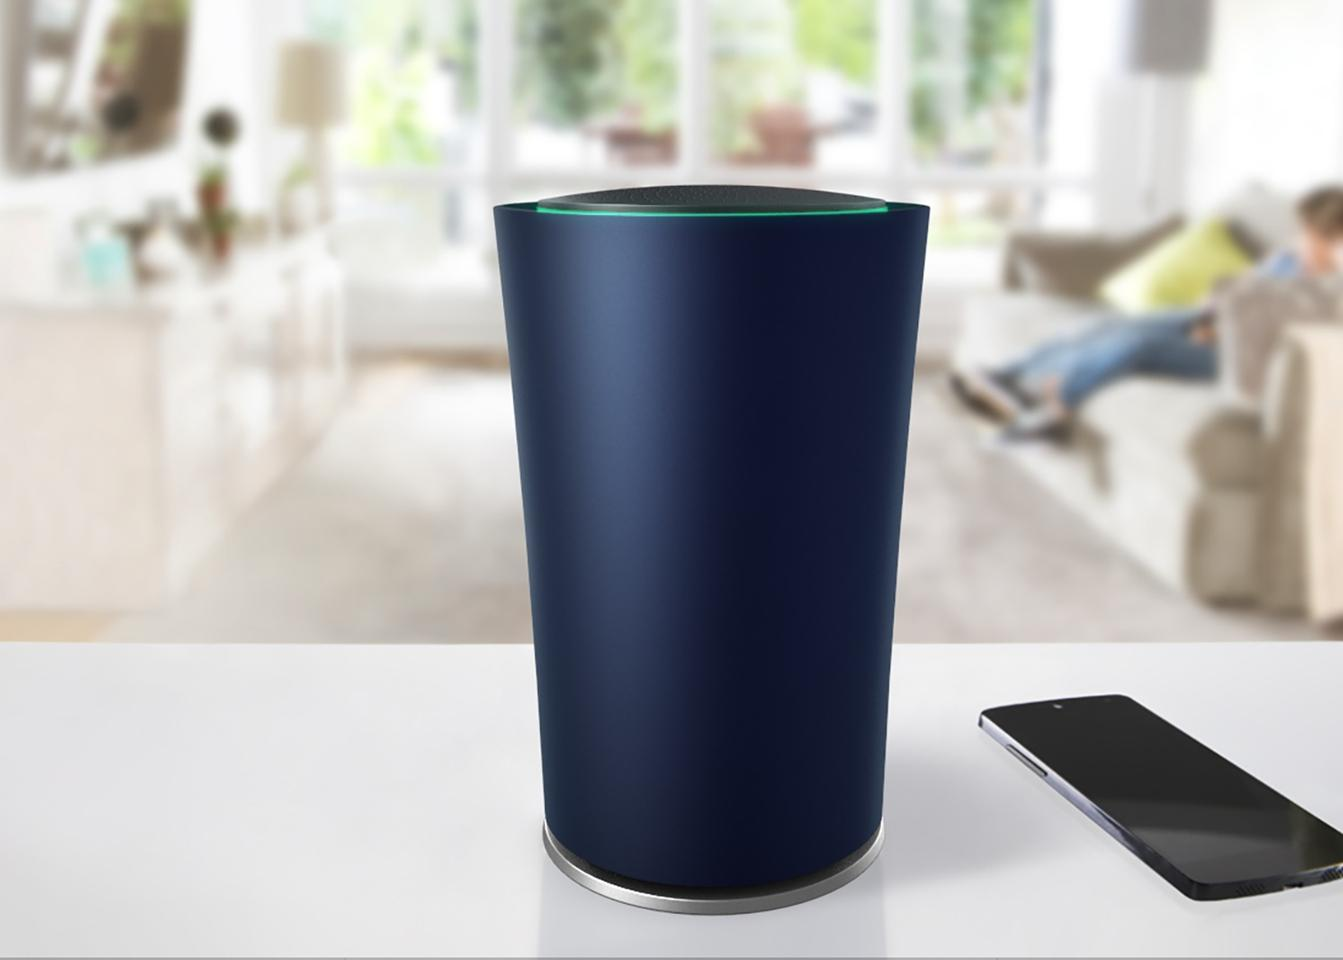 Google wants OnHub to stay out in the open